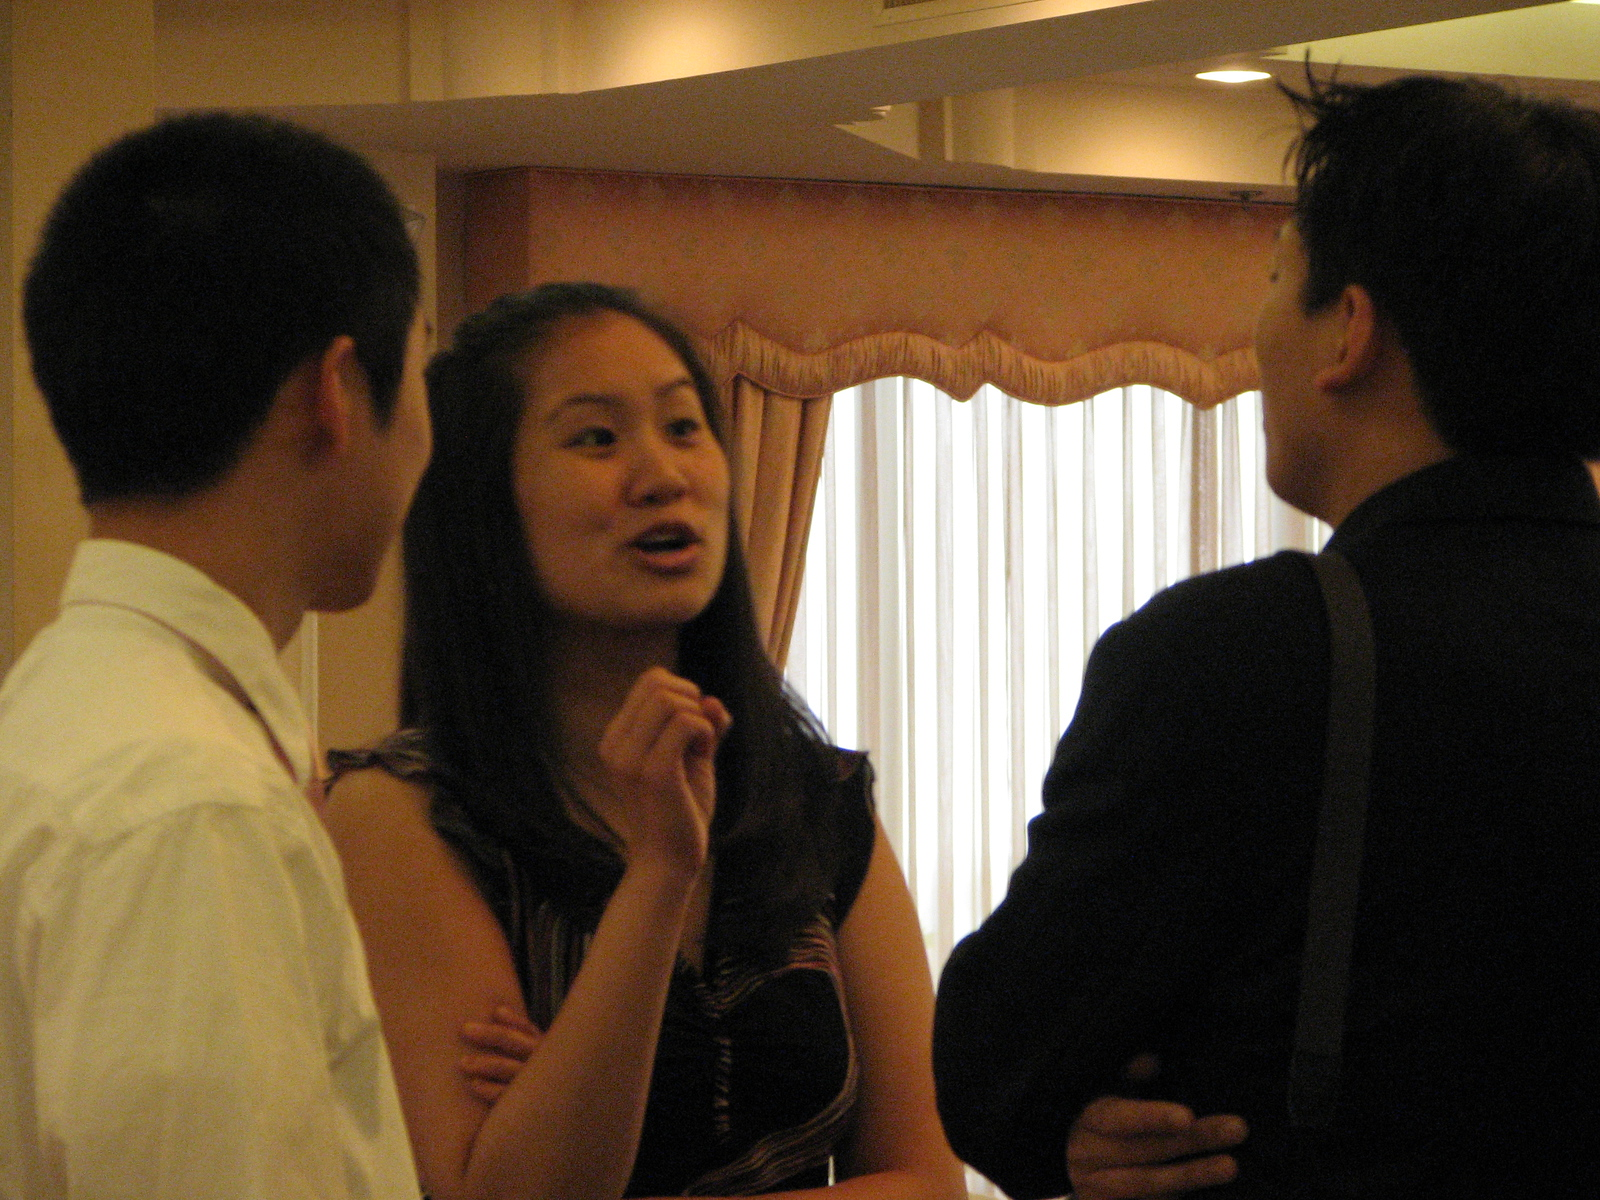 2007 06 09 Sat - Andy Wu, Brittany Chen, & Wing Ho